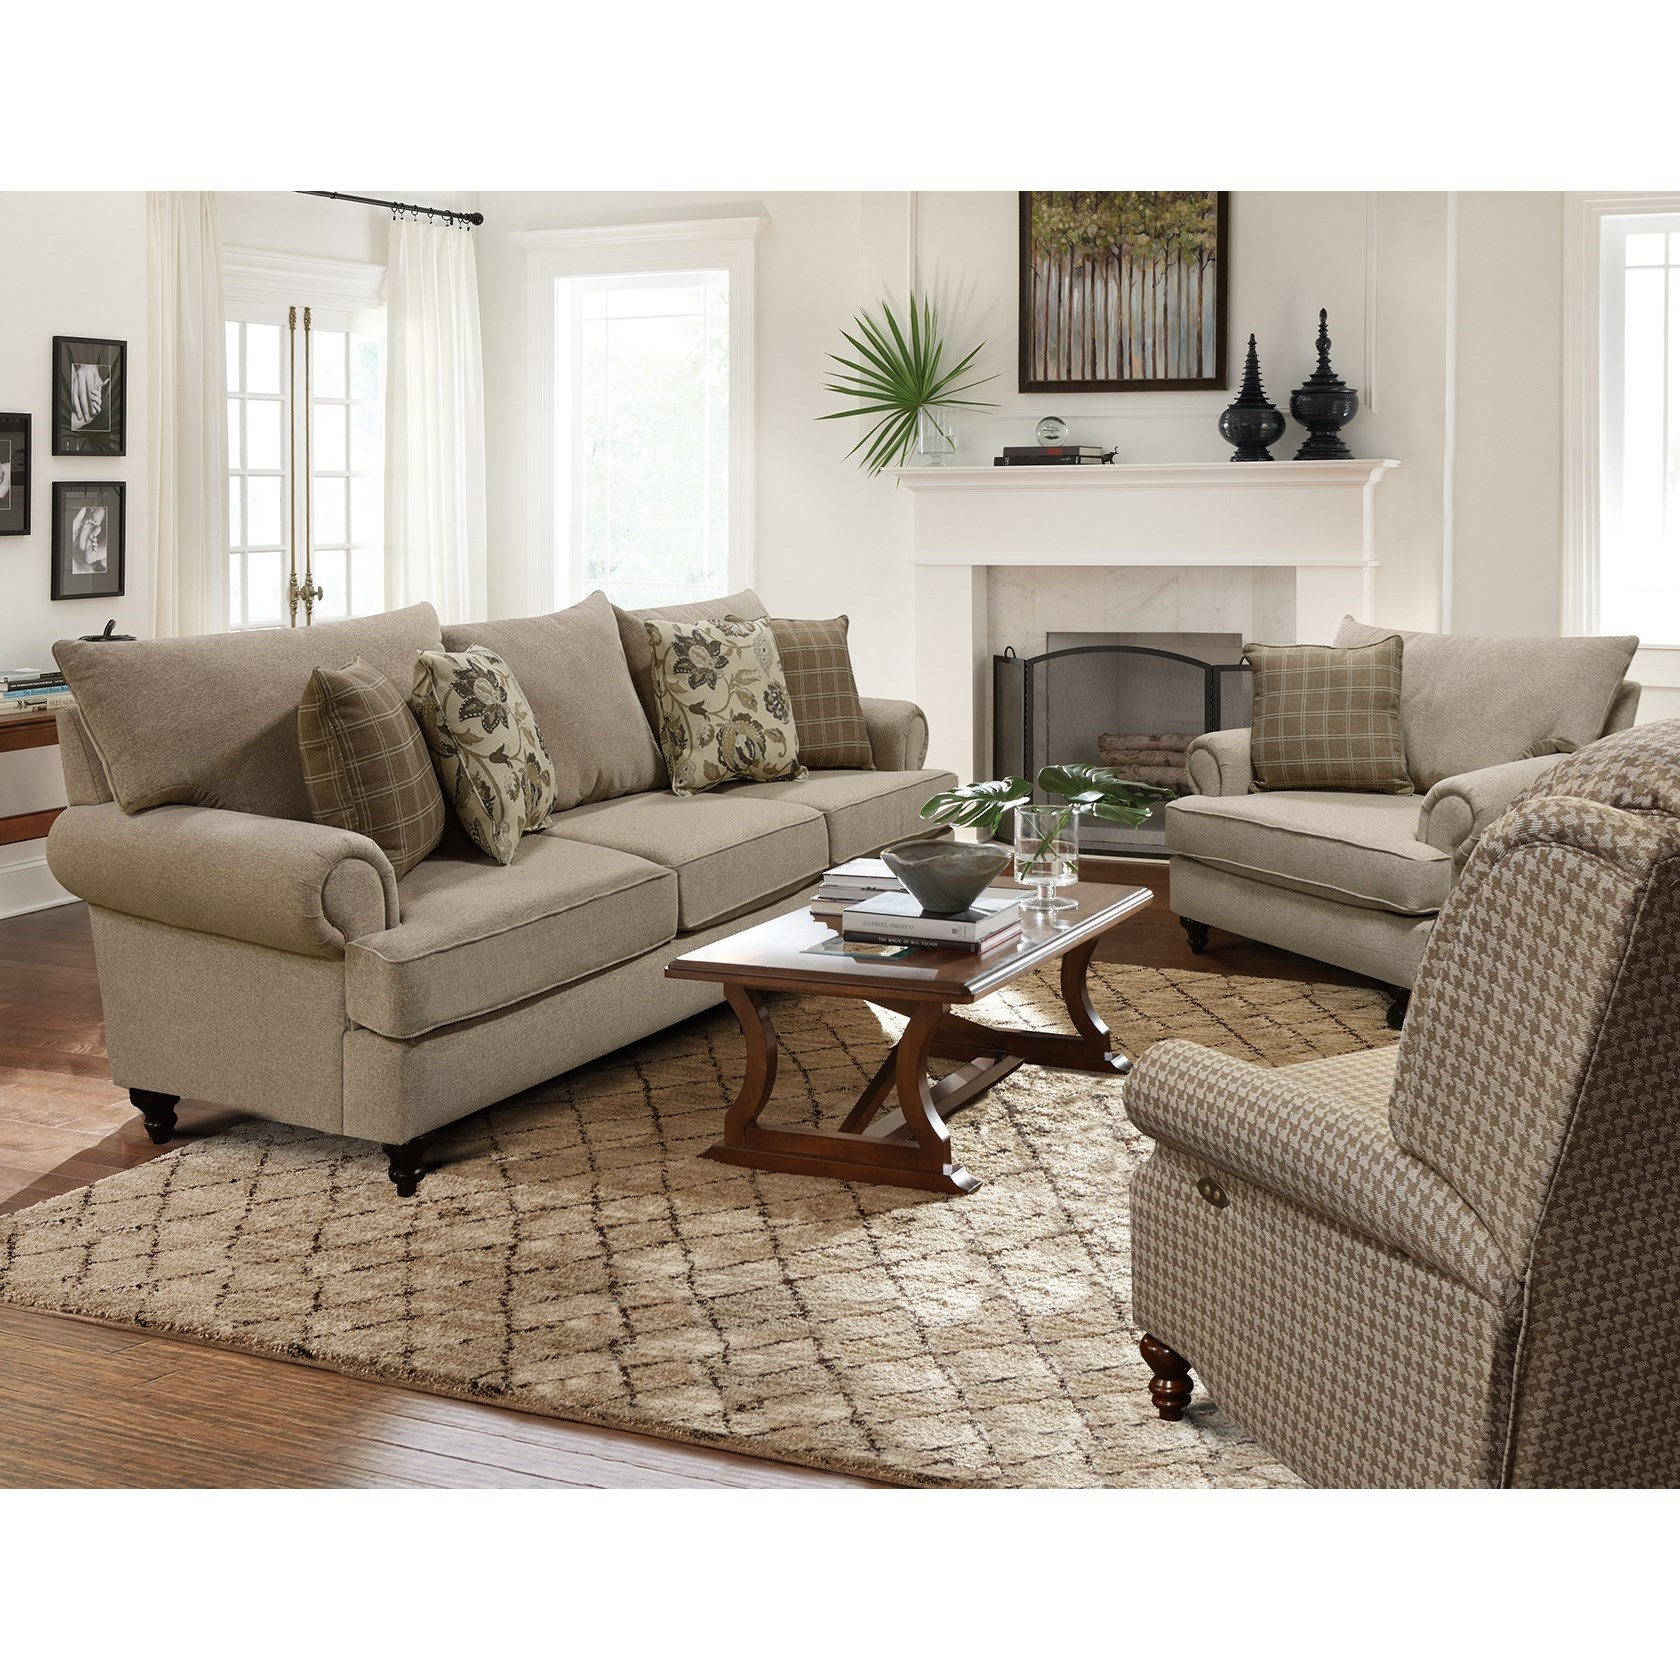 Rosalie Stationary Living Room Group by England at SuperStore